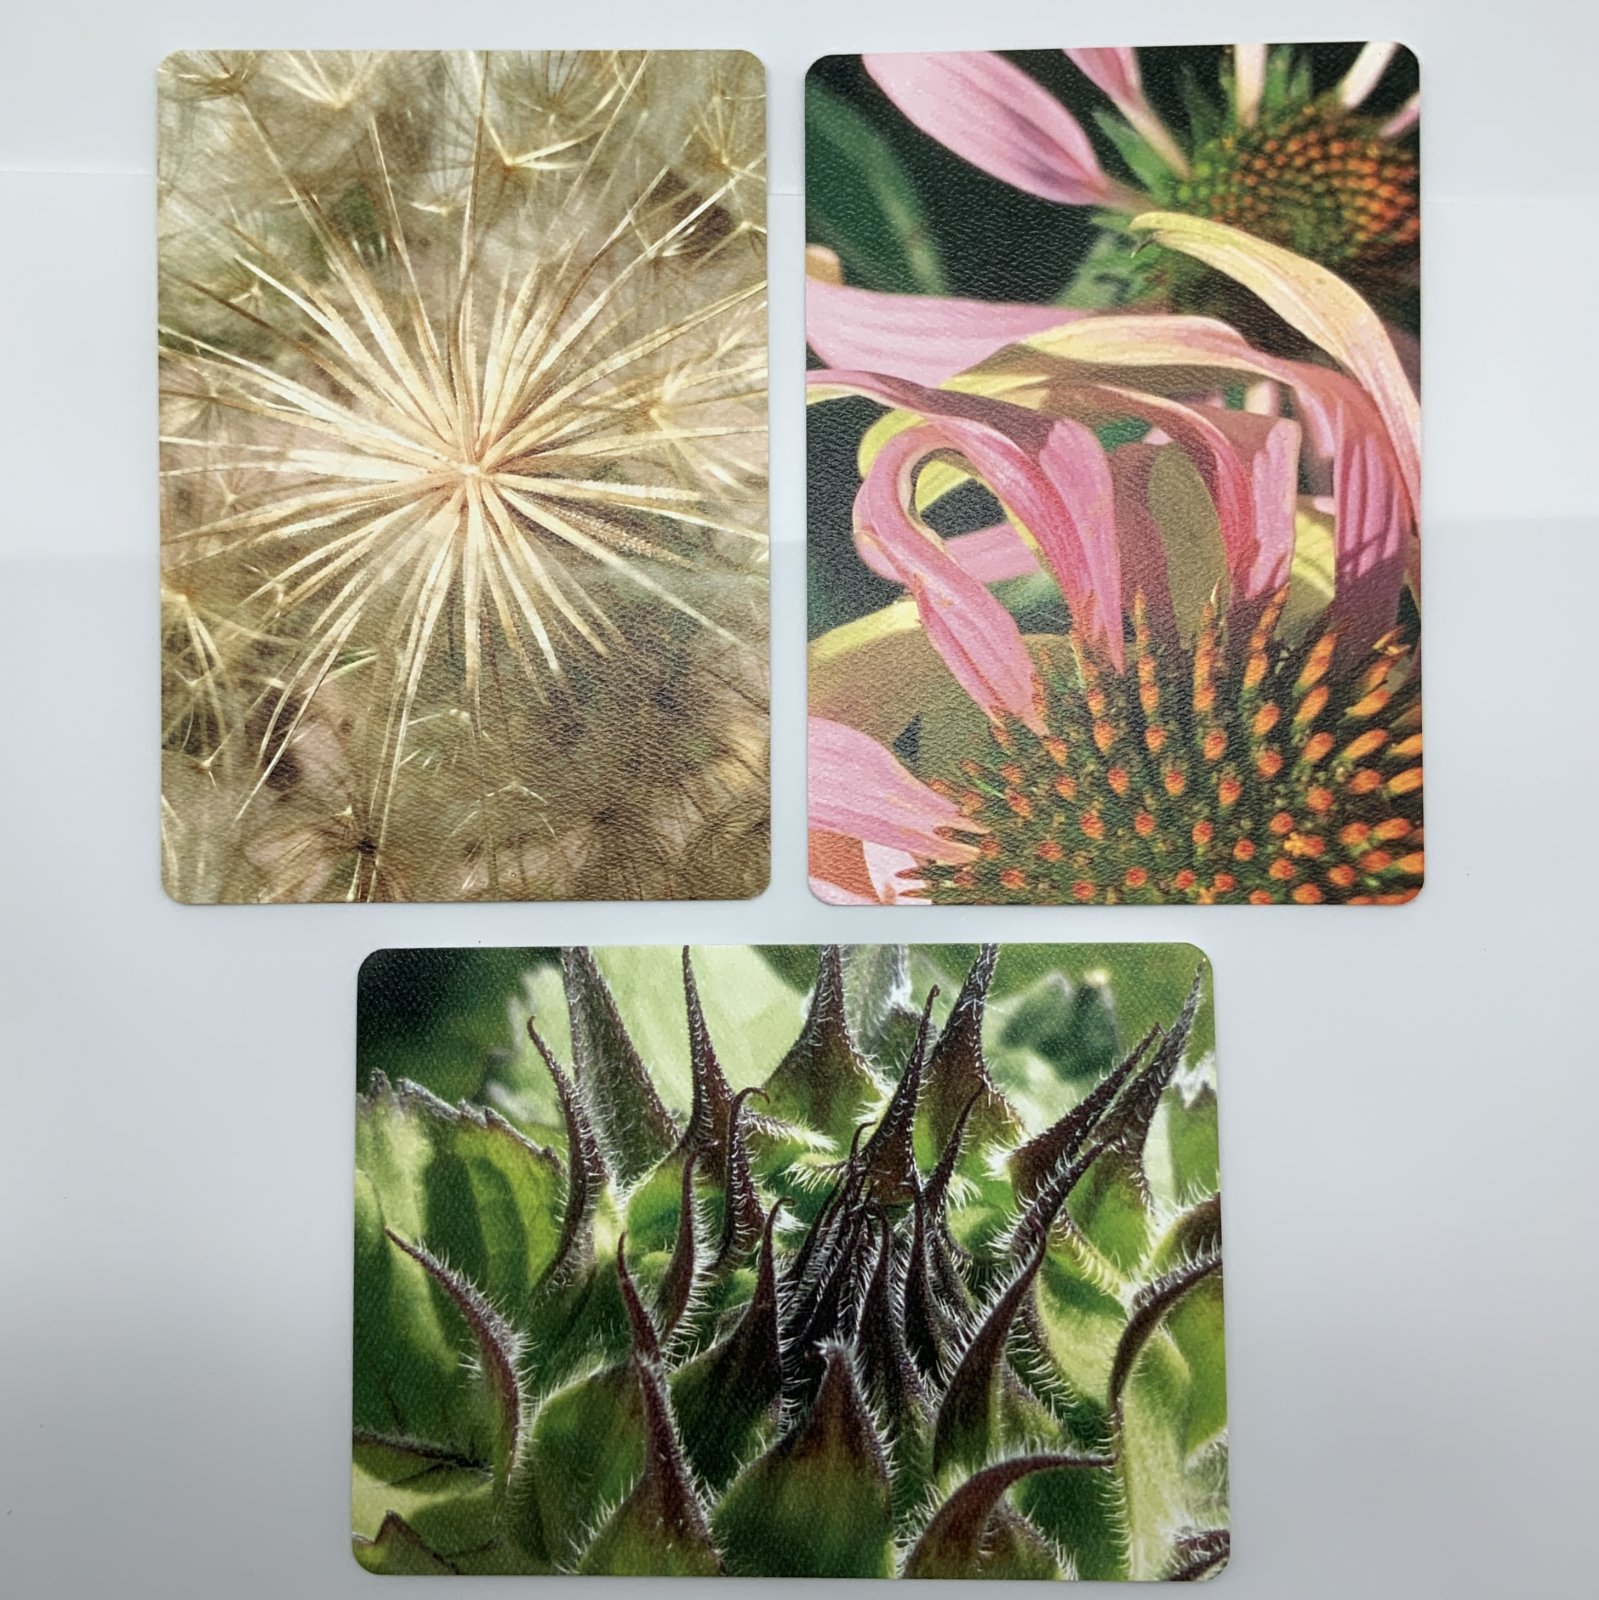 Artistic Floral Postcard Collection 2